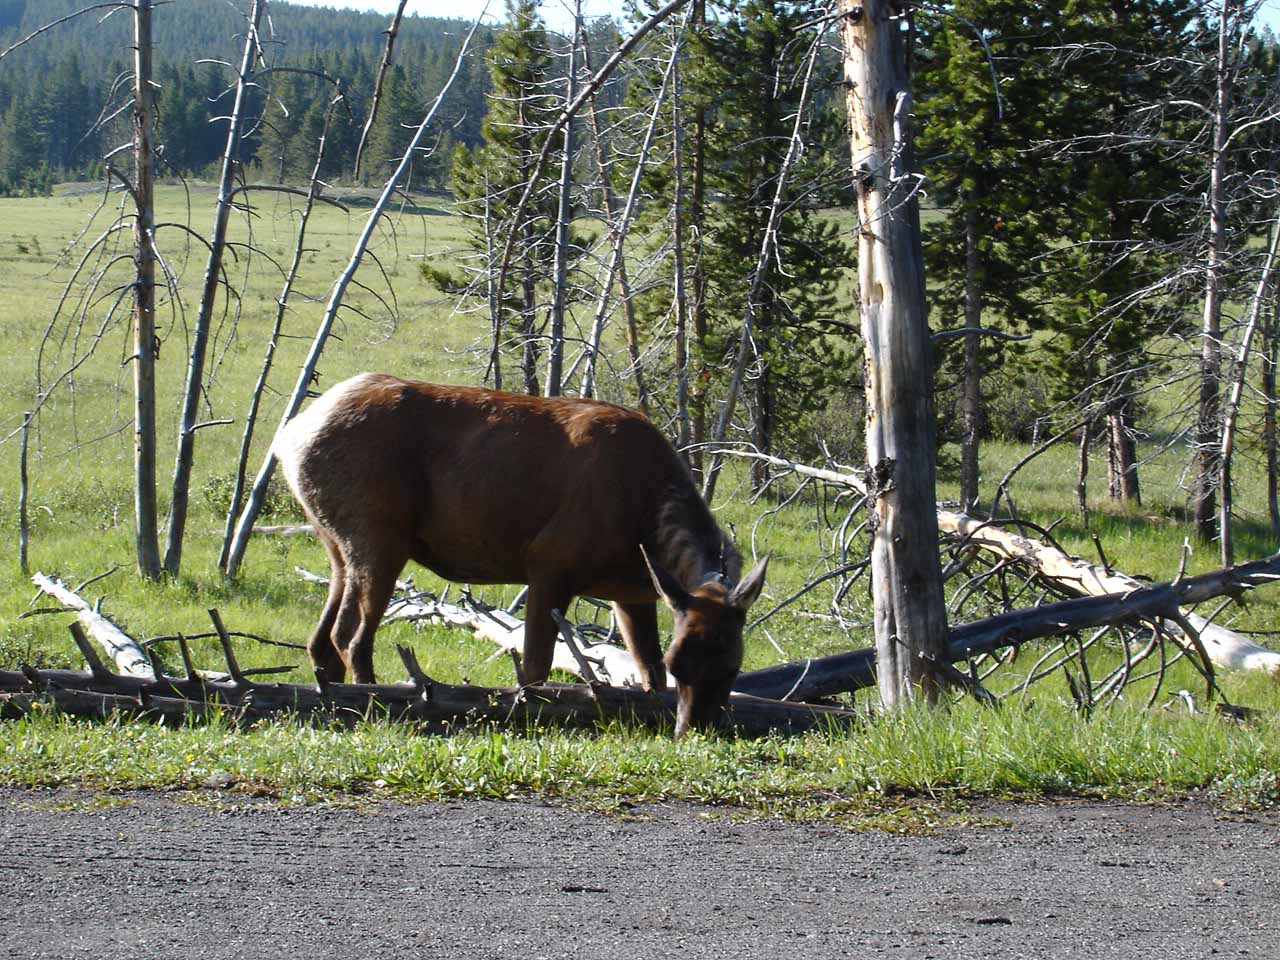 Towards the end of the Virginia Cascades loop road, we saw this elk grazing right next to the one-way road